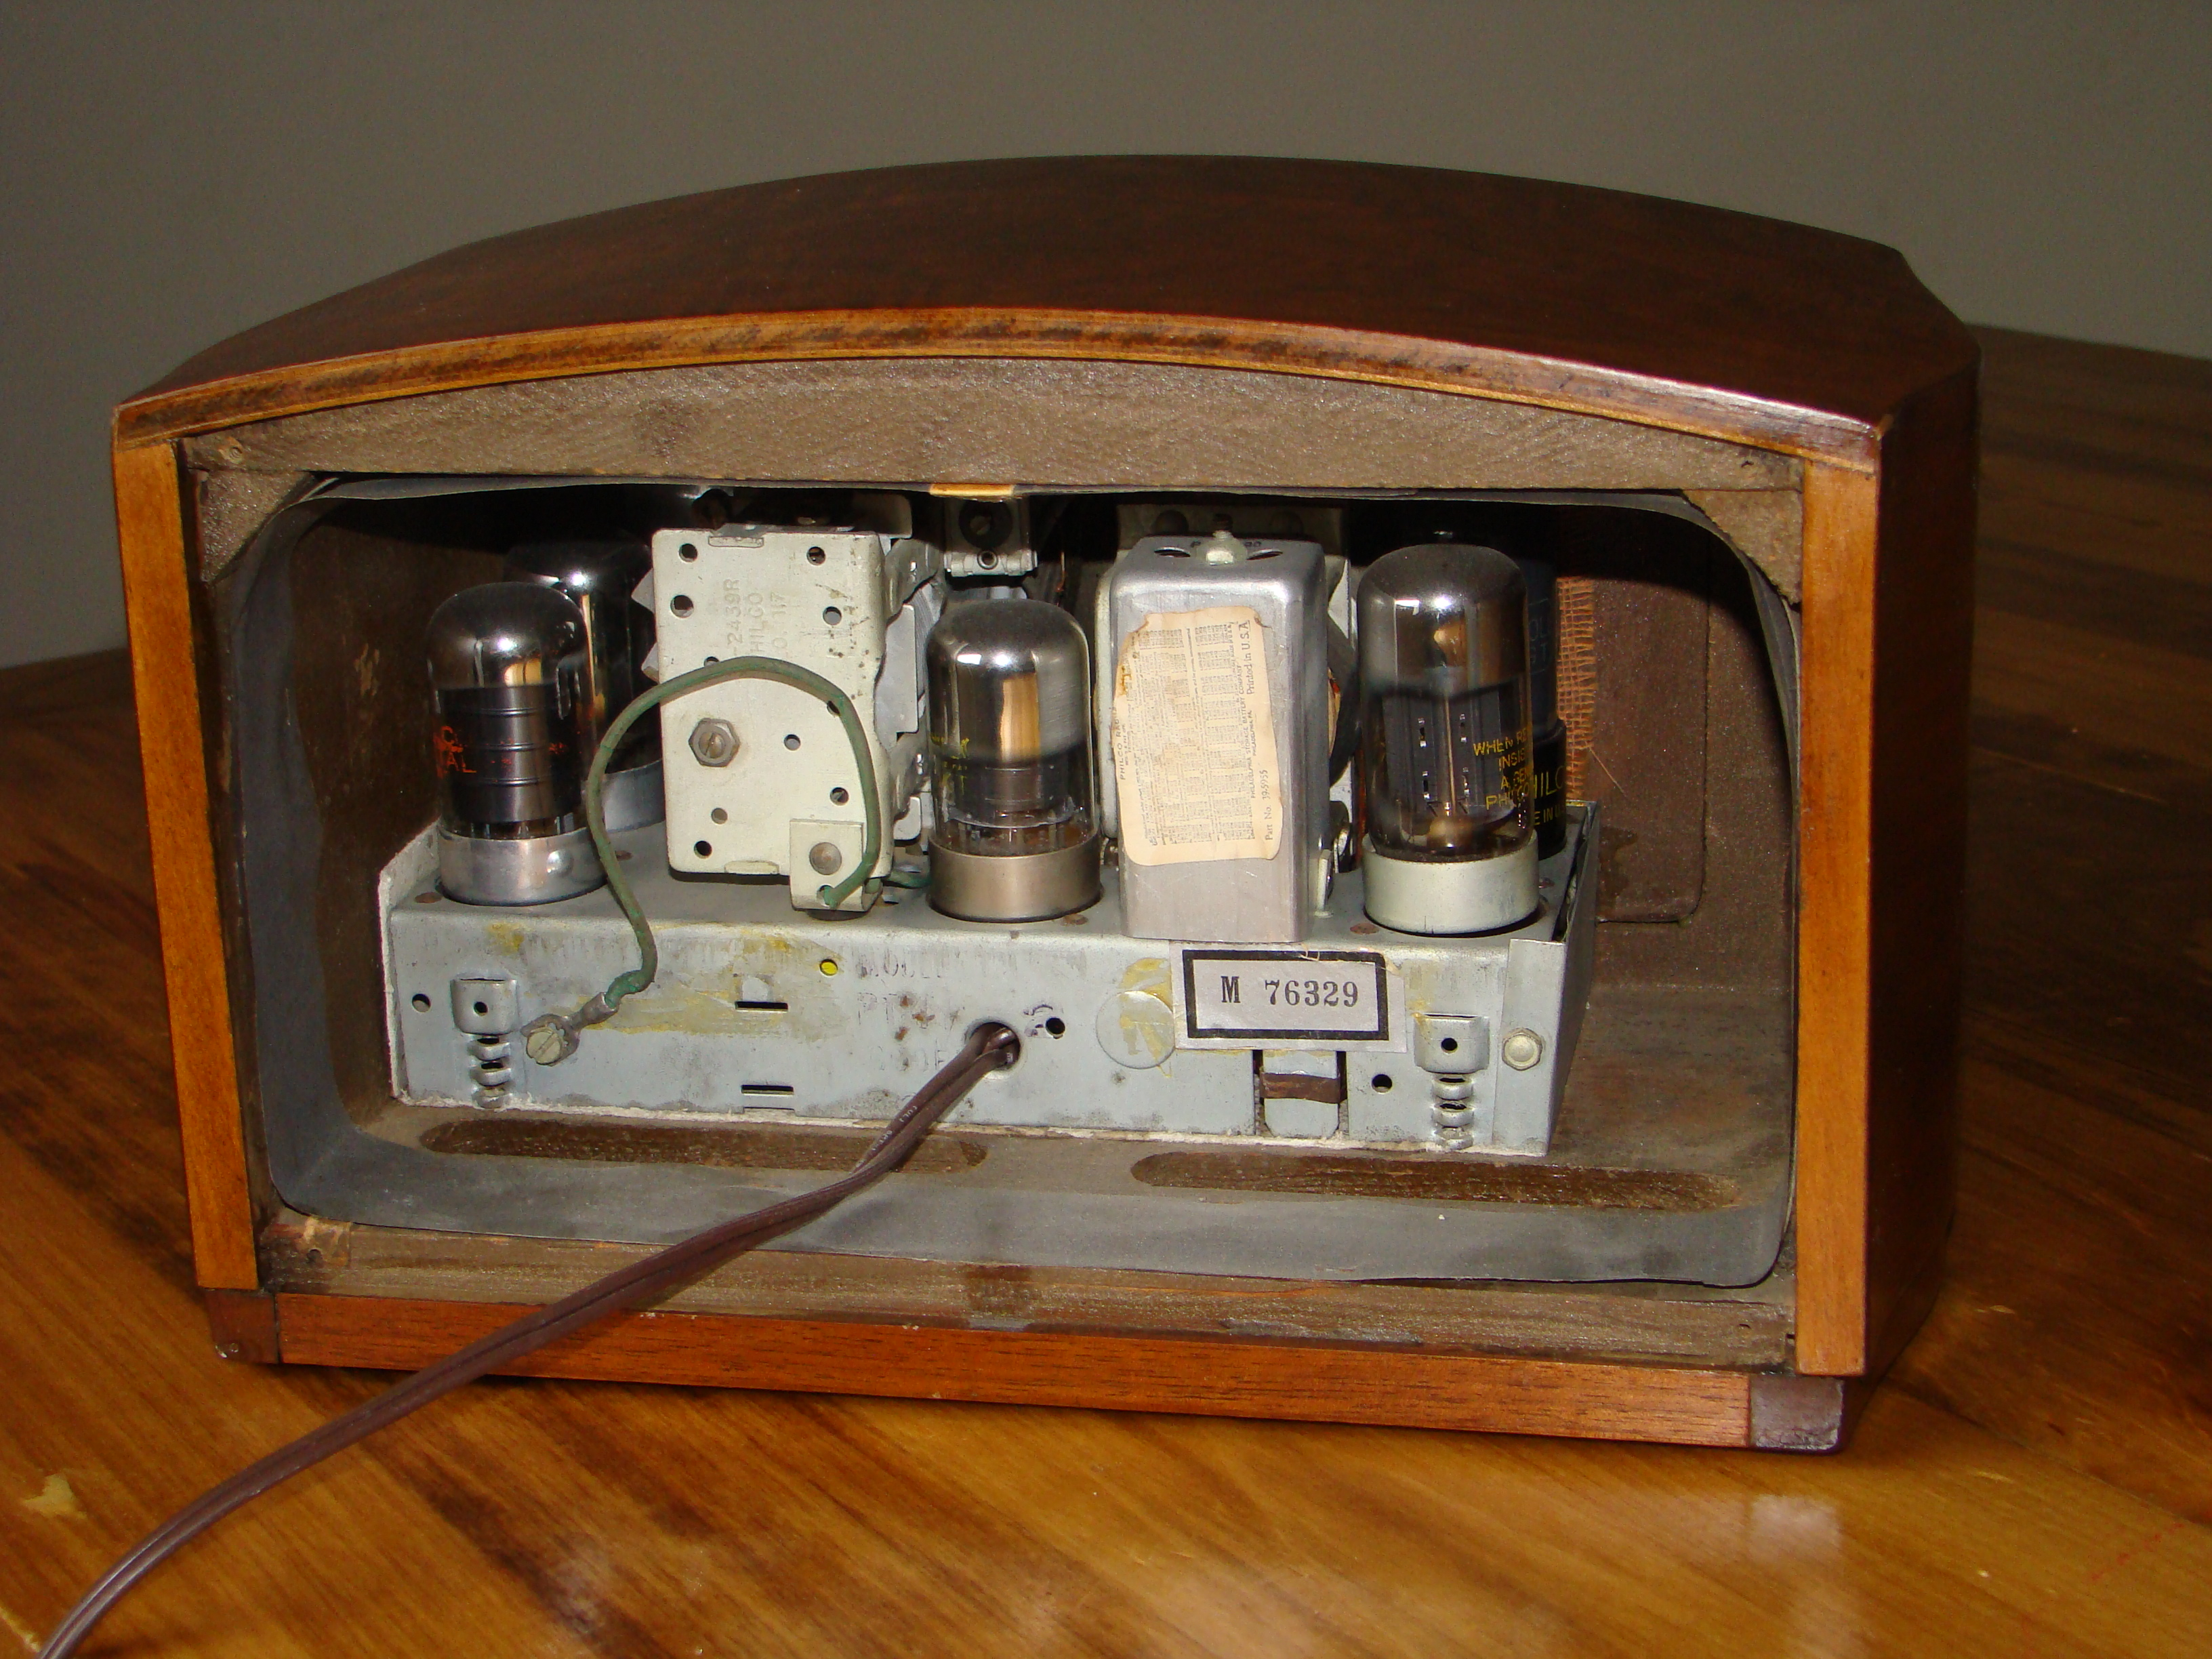 Philco radio model PT44 back cover removed